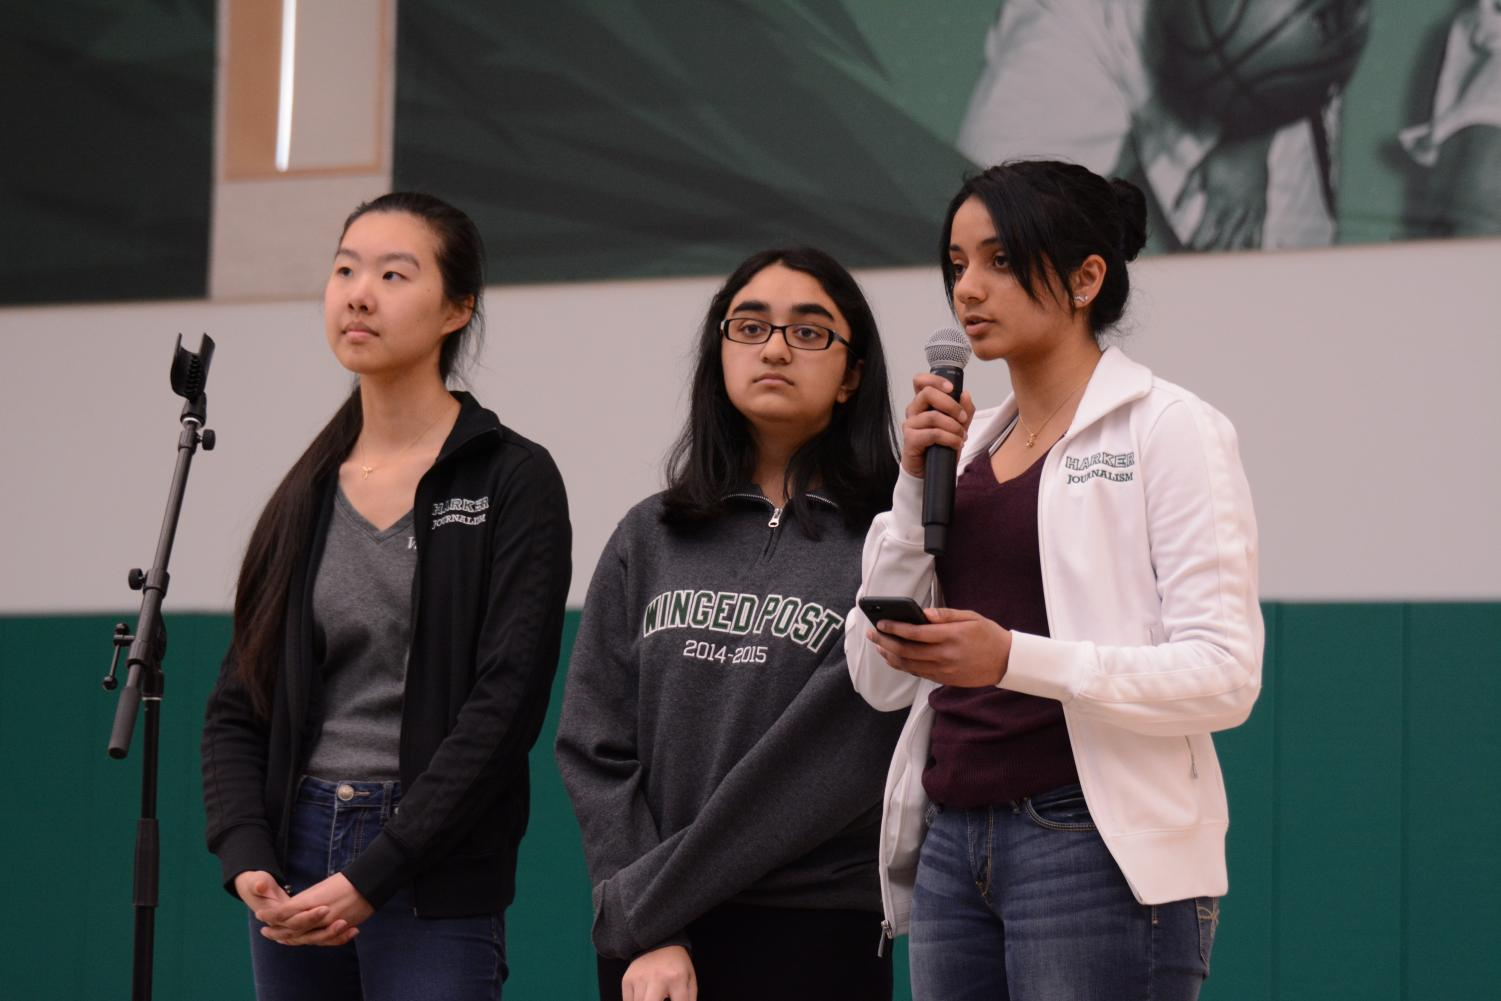 Winged Post Co-Editors-in-Chief Kaitlin Hsu (12) and Sahana Srinivasan (12) and Harker Aquila Editor-in-Chief Meena Gudapati (12) announce the release of Issue 5 of the Winged Post and a Harker Aquila package about the Marjory Stoneman Douglas High School shooting. Harker Journalism conducted interviews with MSD students Emma Gonzalez and David Hogg as well as MSD journalism teacher Melissa Falkowski for coverage of the shooting.